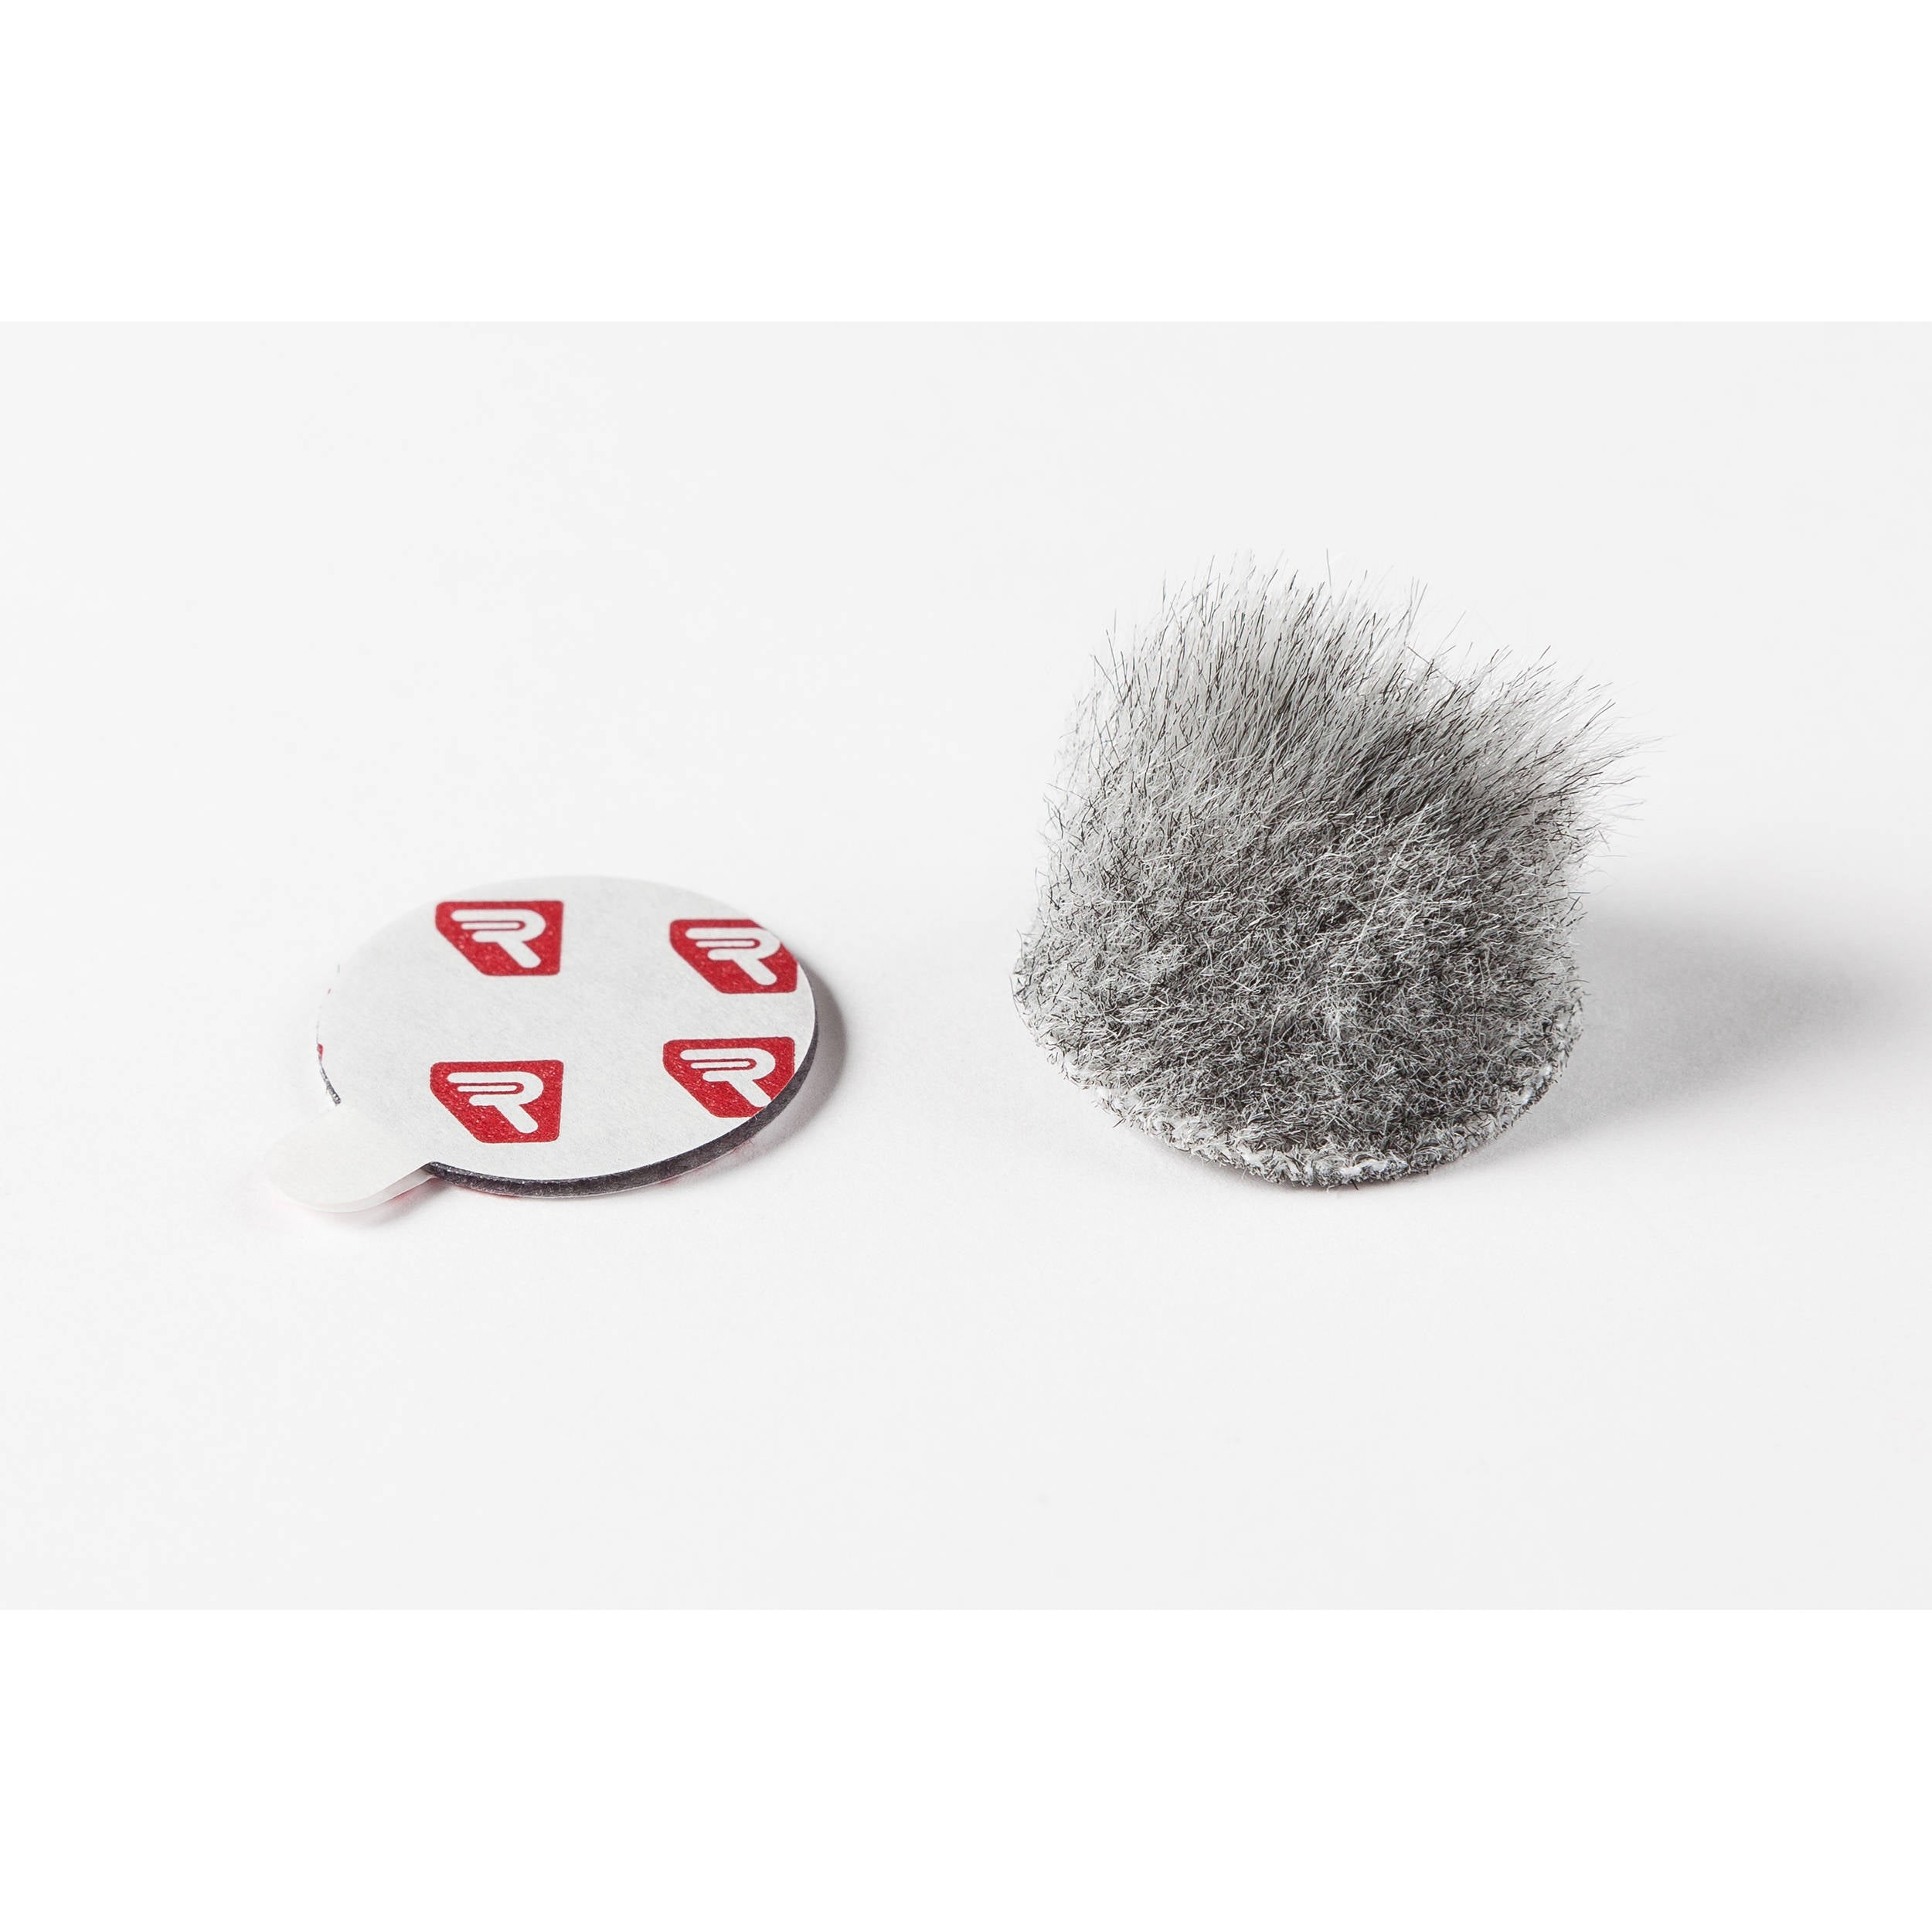 Rycote Overcovers Advanced, Wind Covers & Adhesive Mounts for Lavalier Mics (Gray)